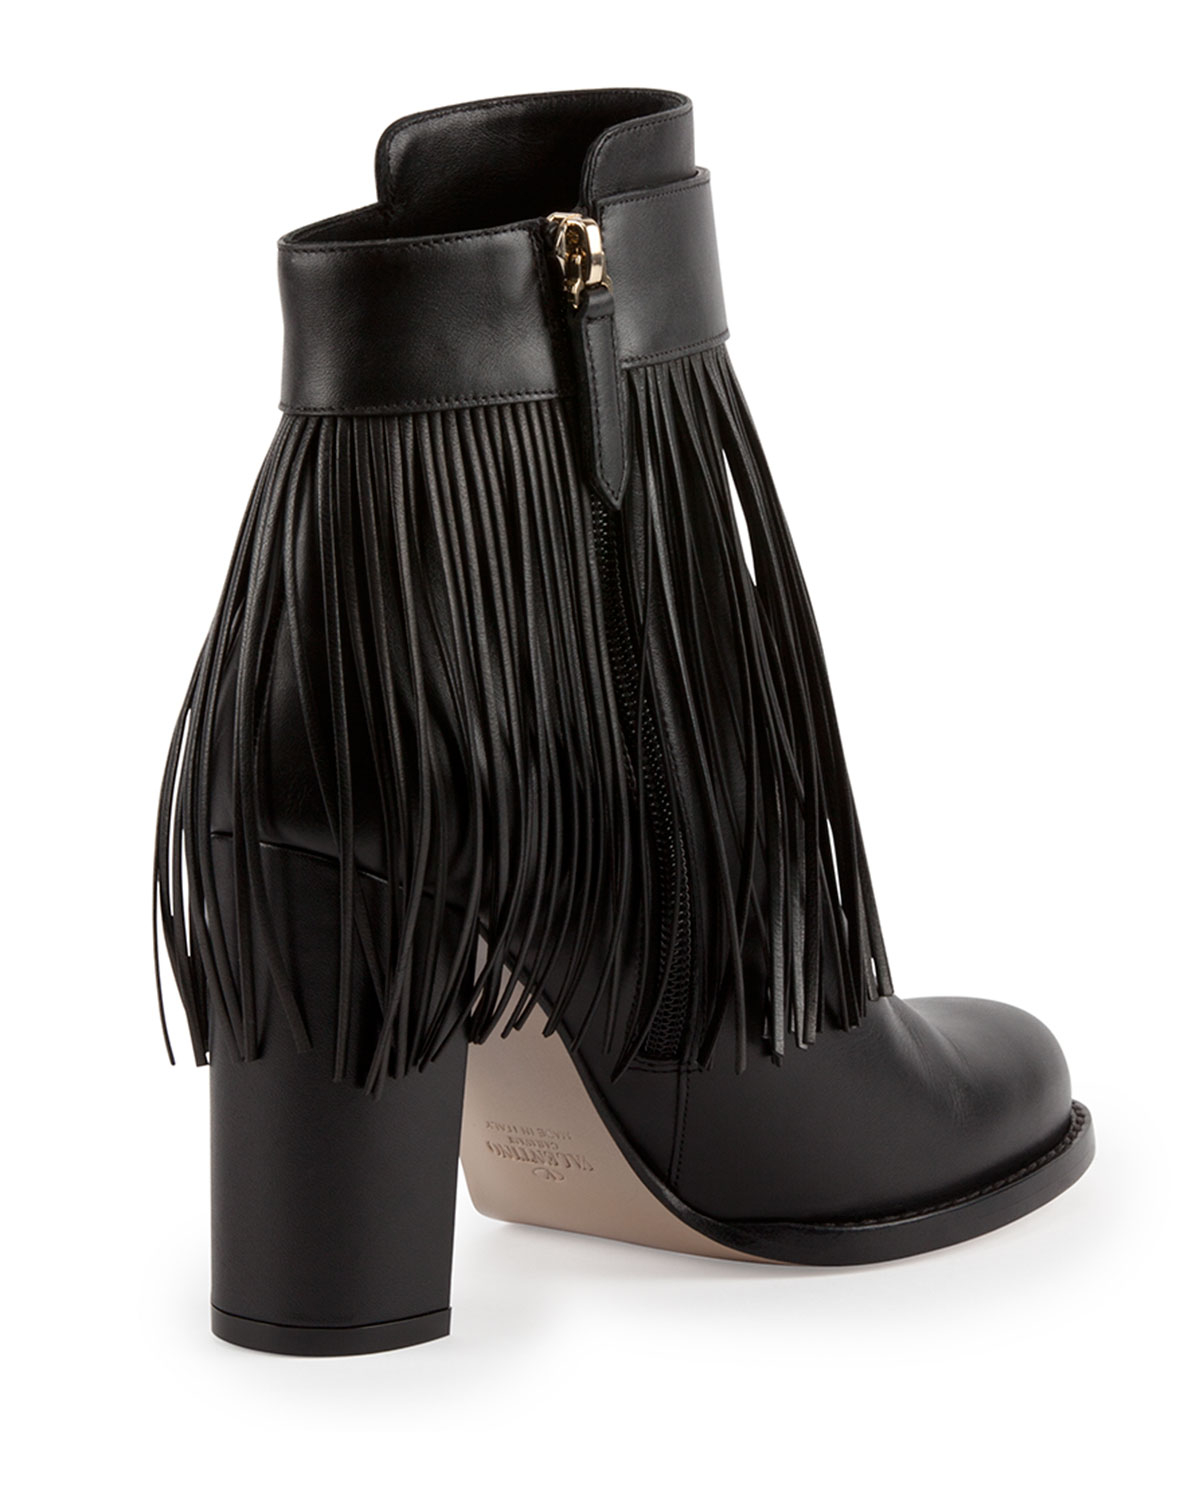 Valentino Fringe Leather Ankle Boot in Black | Lyst